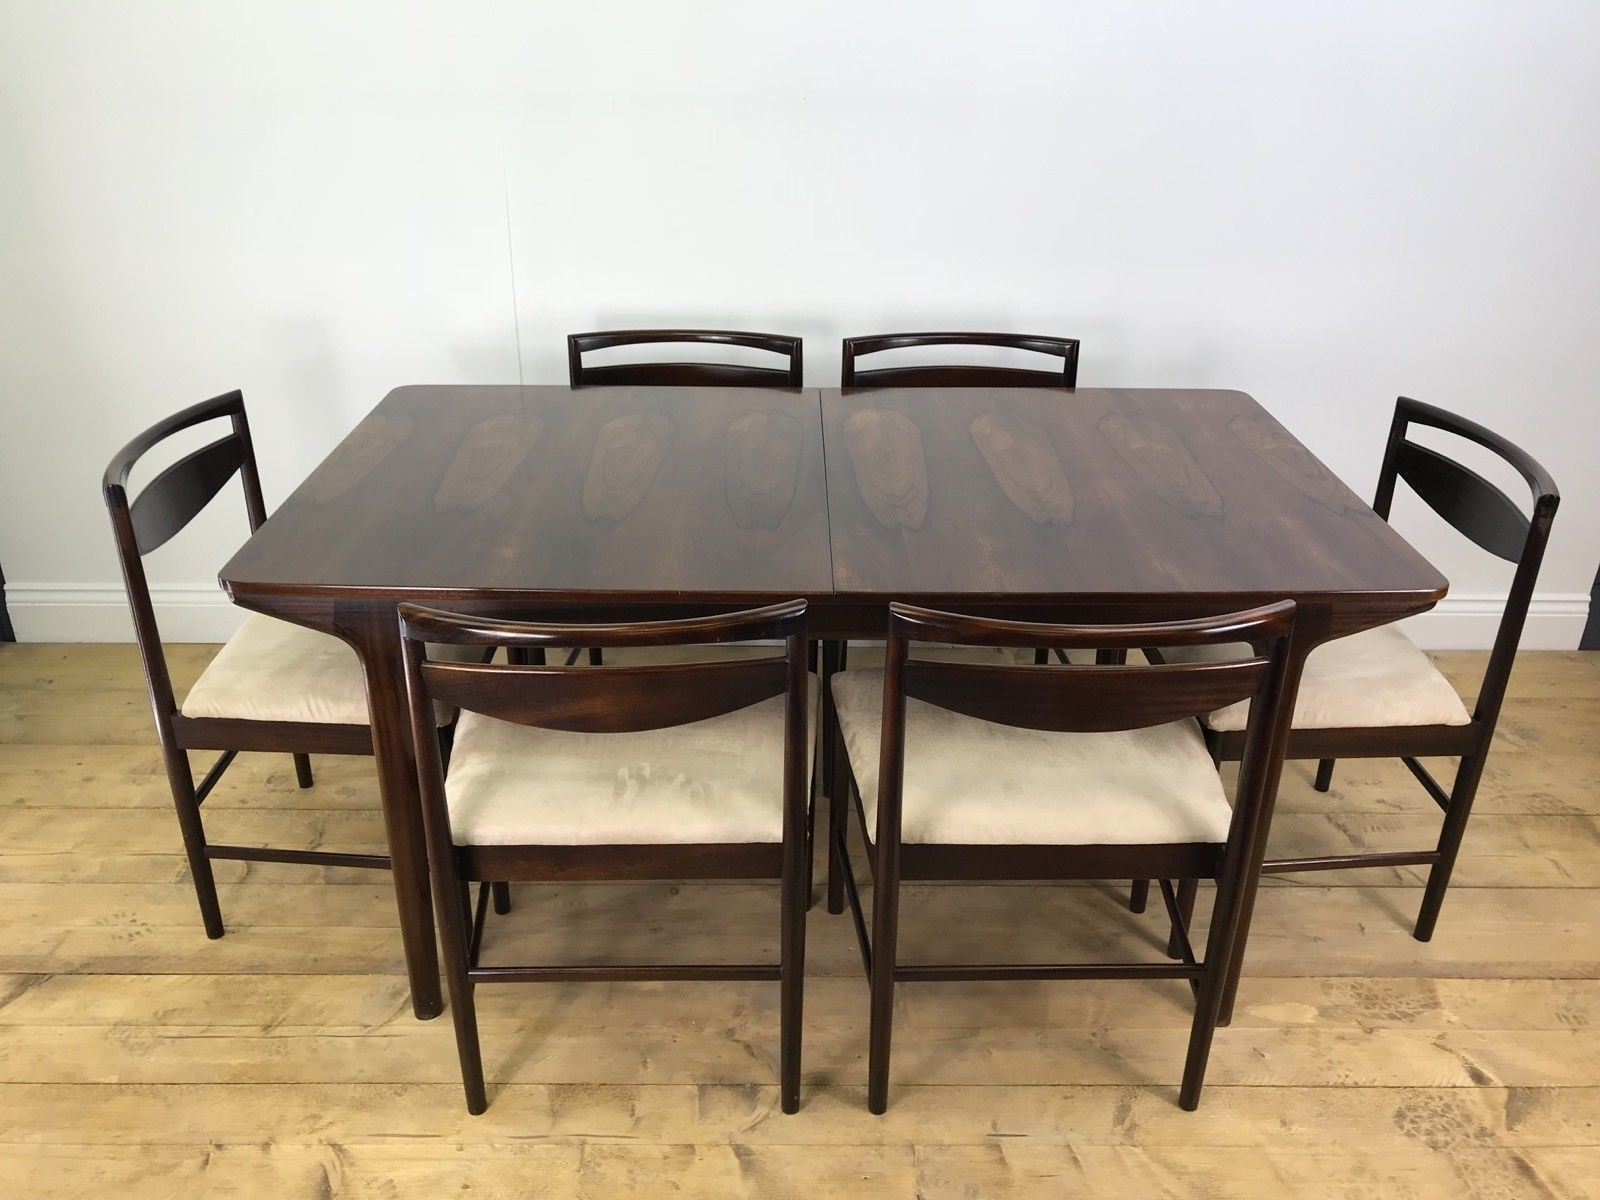 Stunning Mcintosh Rosewood Dining Table 6 Chairs Vintage Retro Teak Extending Intended For Current Outdoor Brasilia Teak High Dining Tables (View 18 of 20)